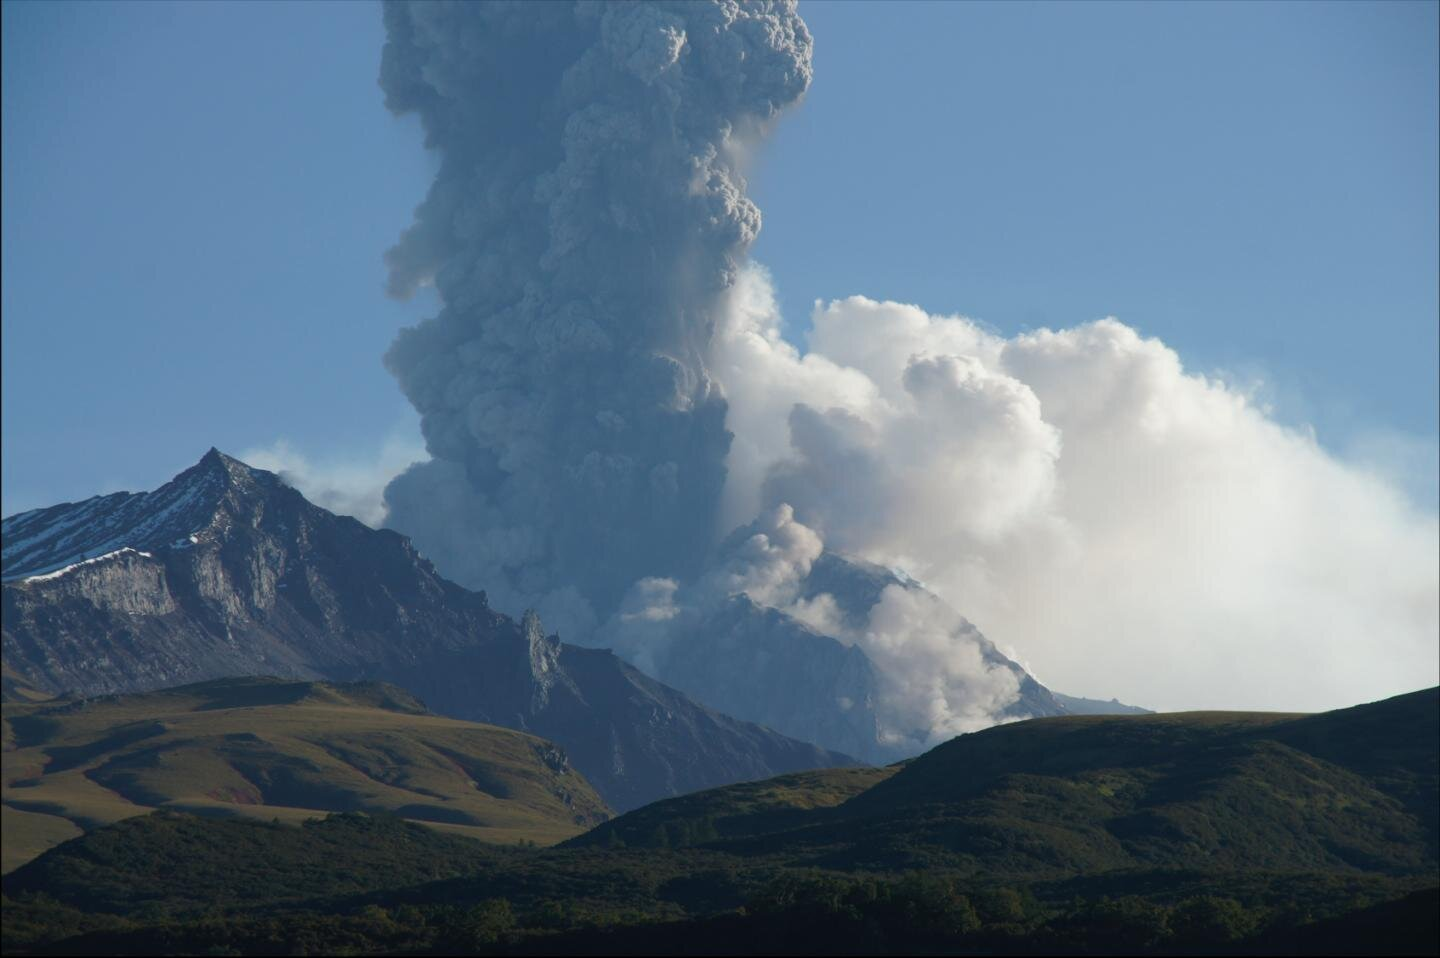 There isn't much in Kamchatka, a remote peninsula in northeastern Russia just across the Bering Sea from Alaska, besides an impressive population of brown bears and the most explosive volcano in the world.